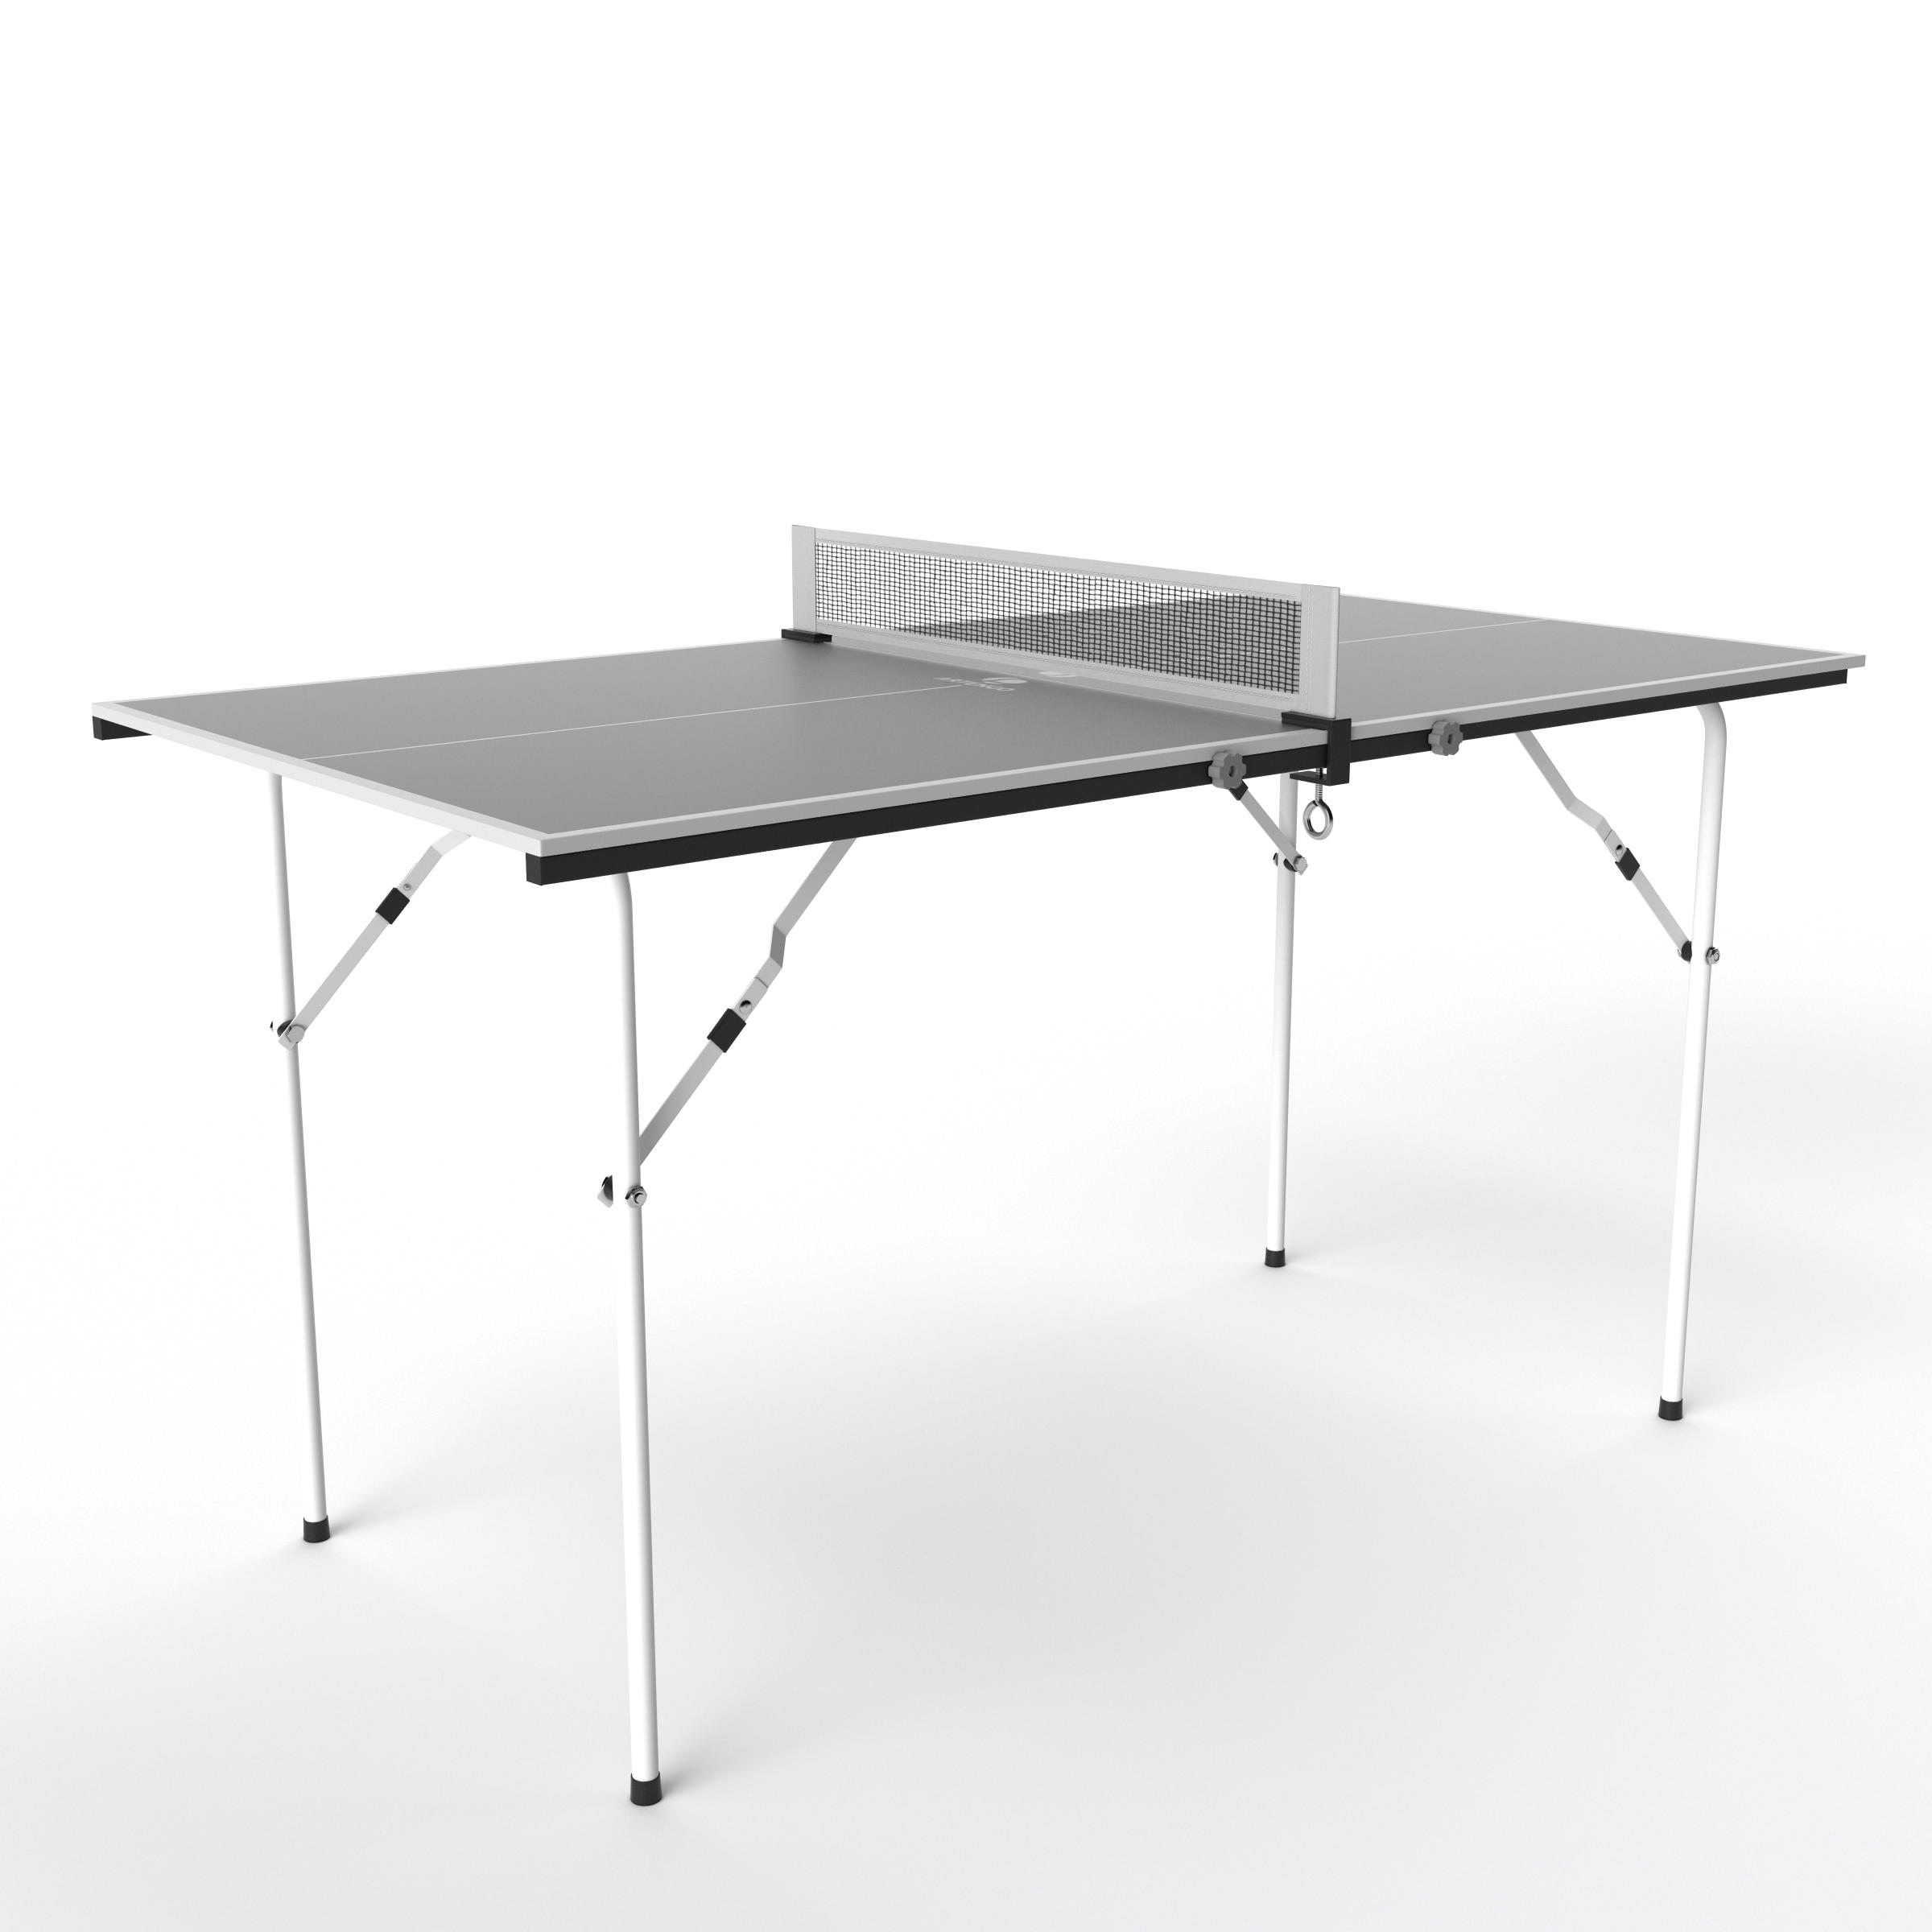 PPT 500 S Indoor Free Ping Pong Table